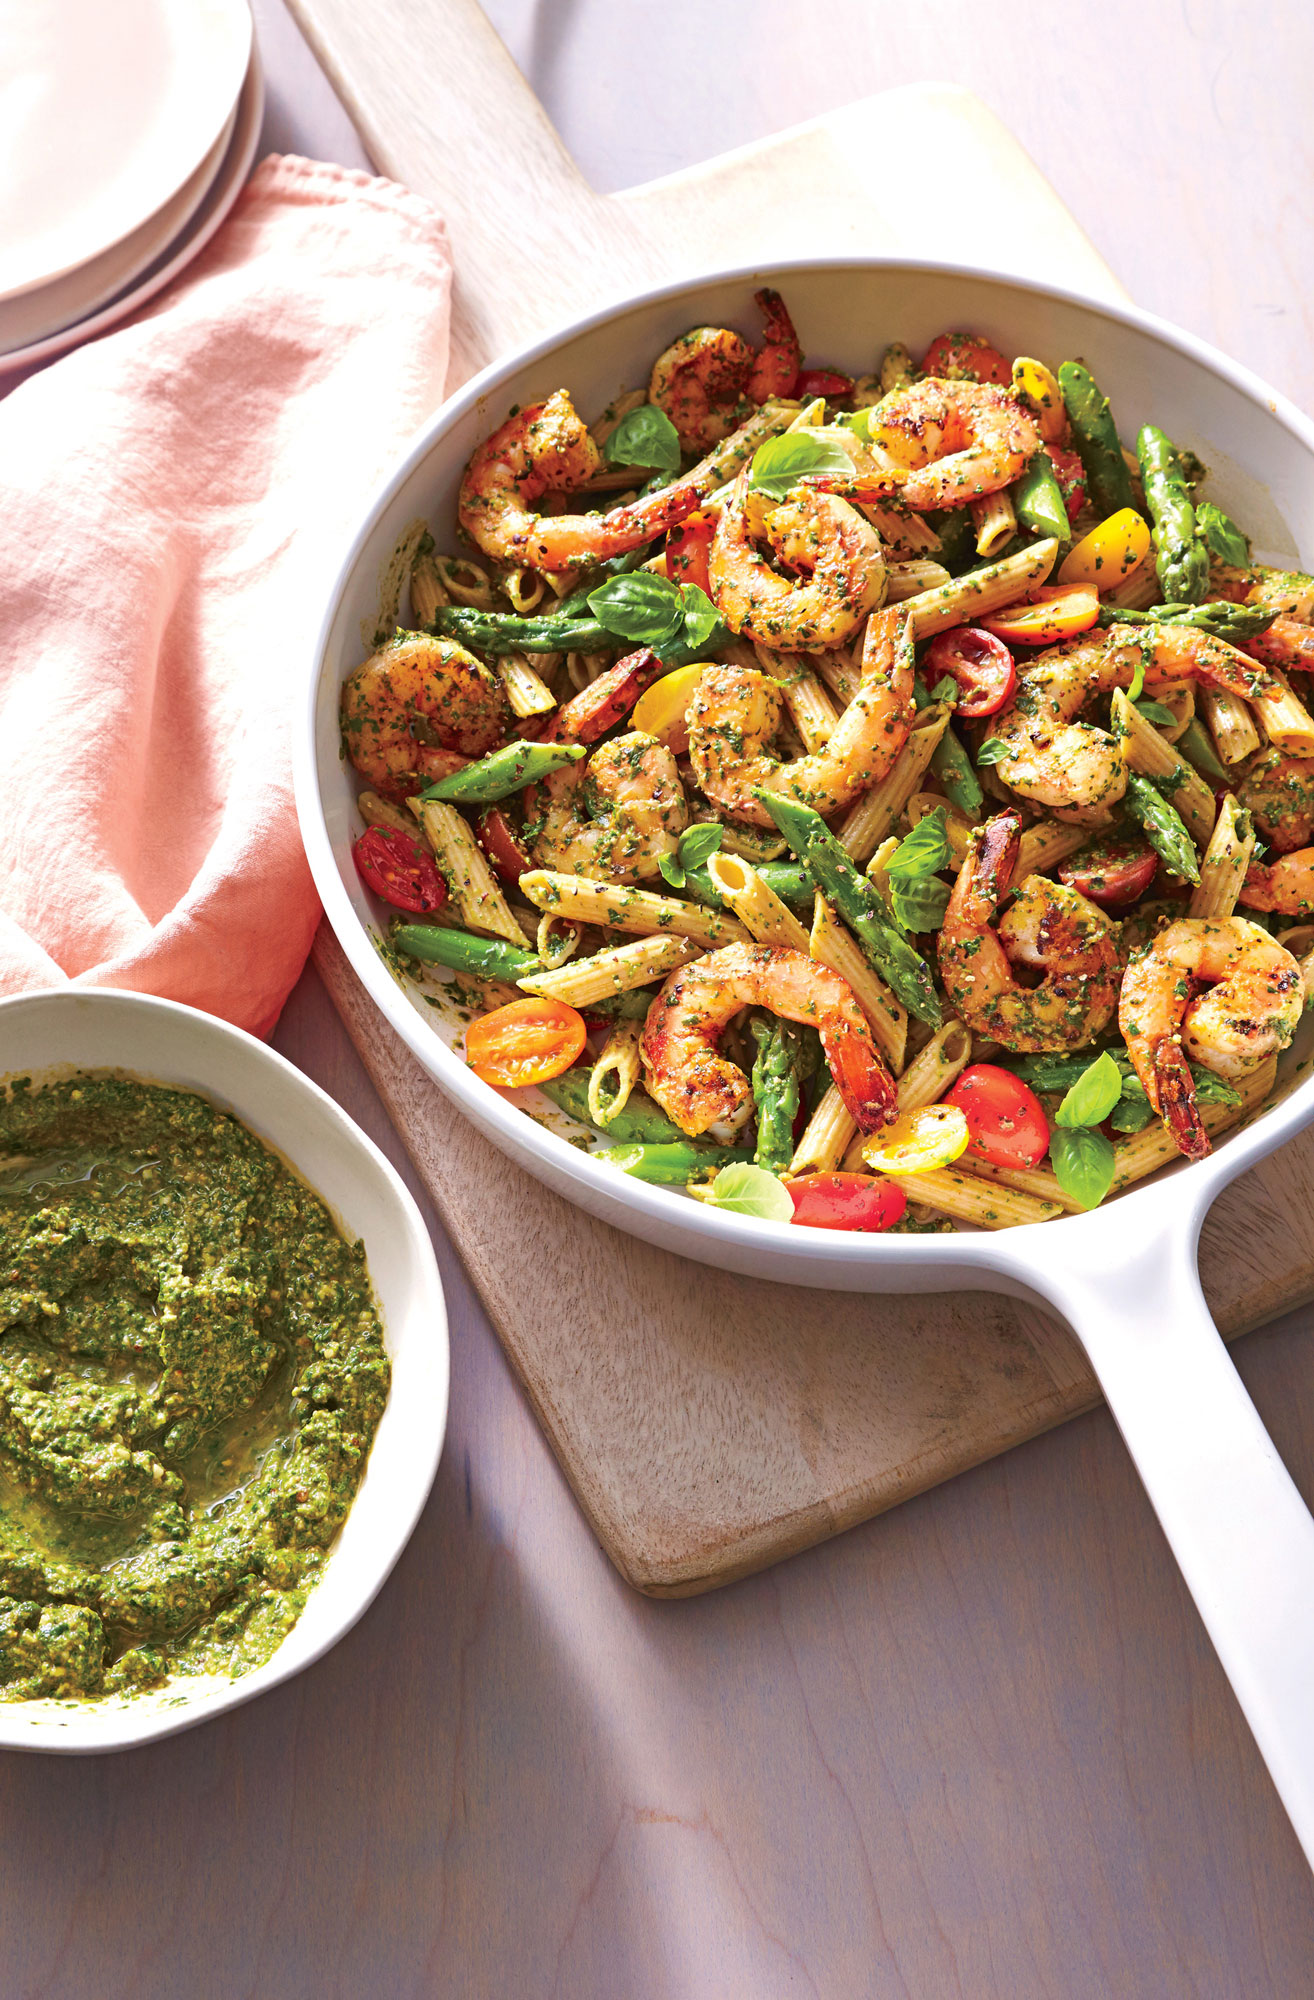 Spinach Pesto Pasta with Shrimp